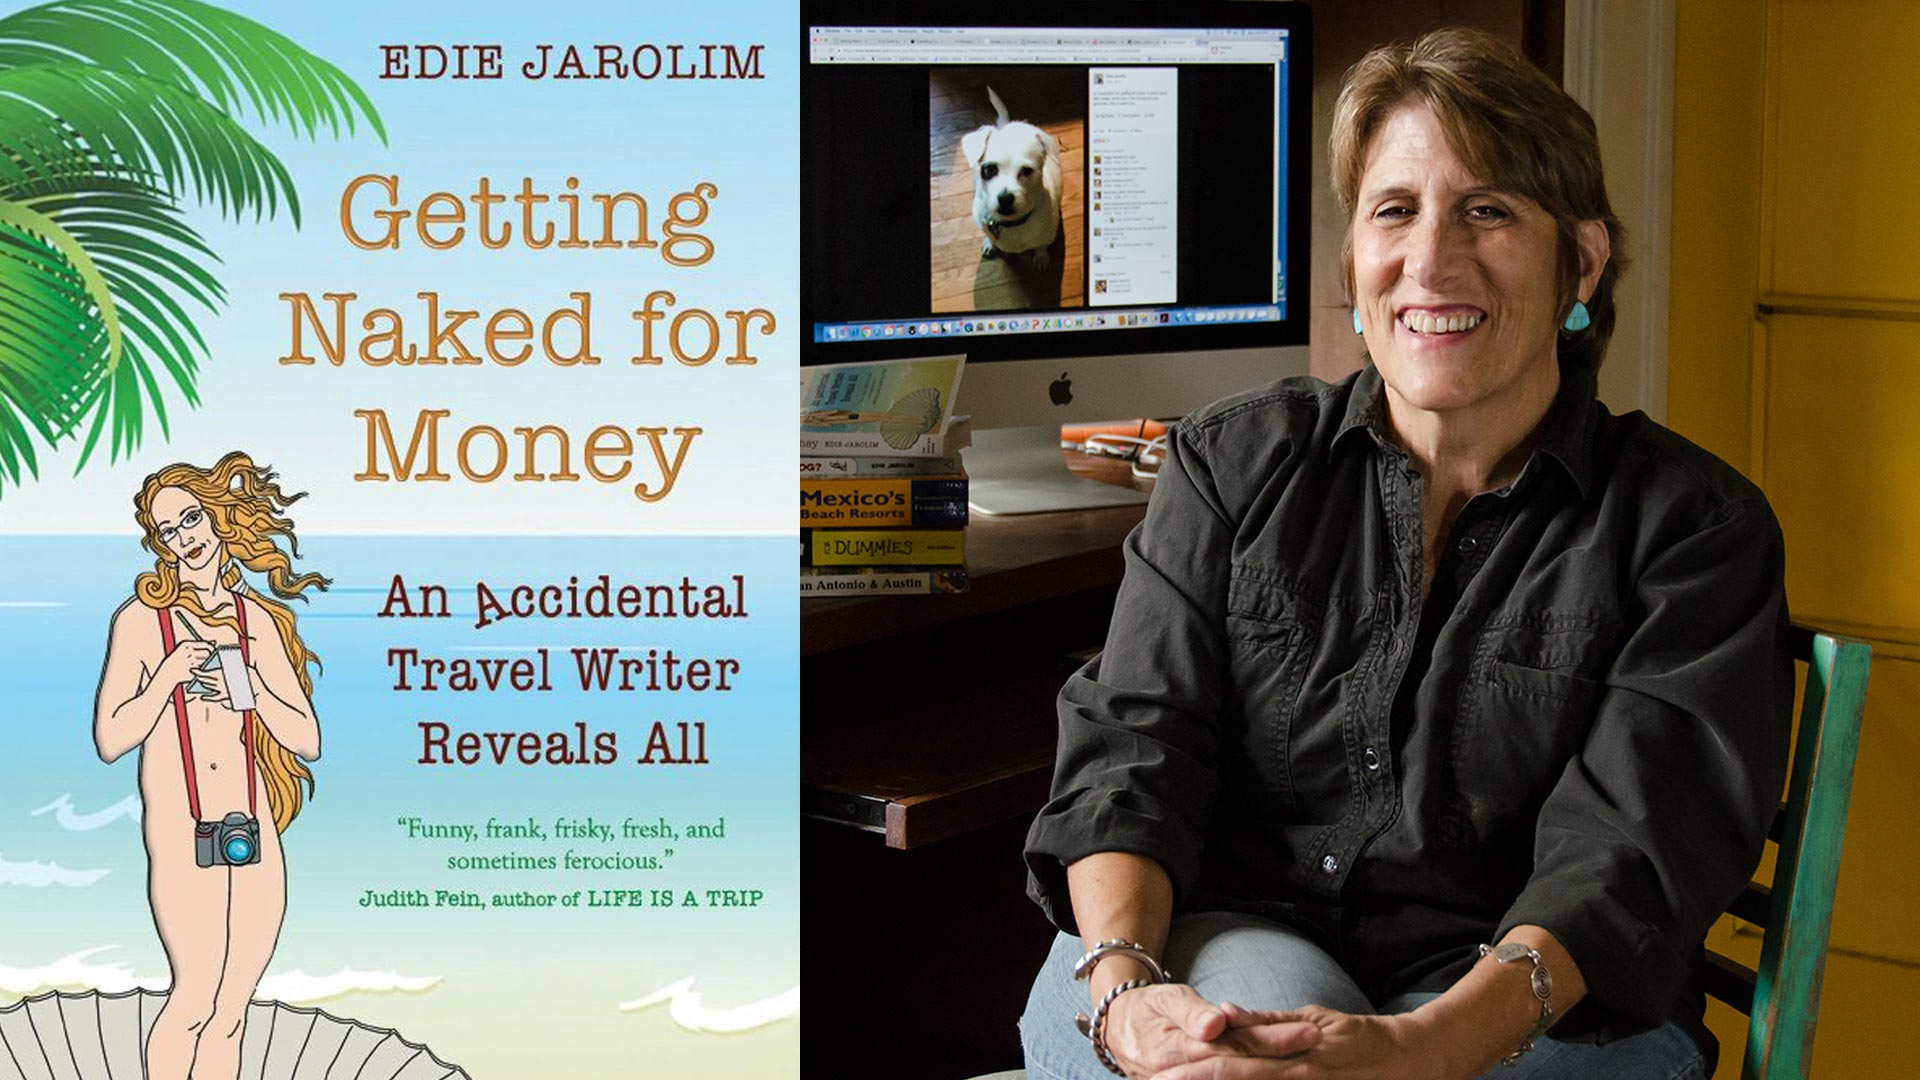 author edie jarolim hero